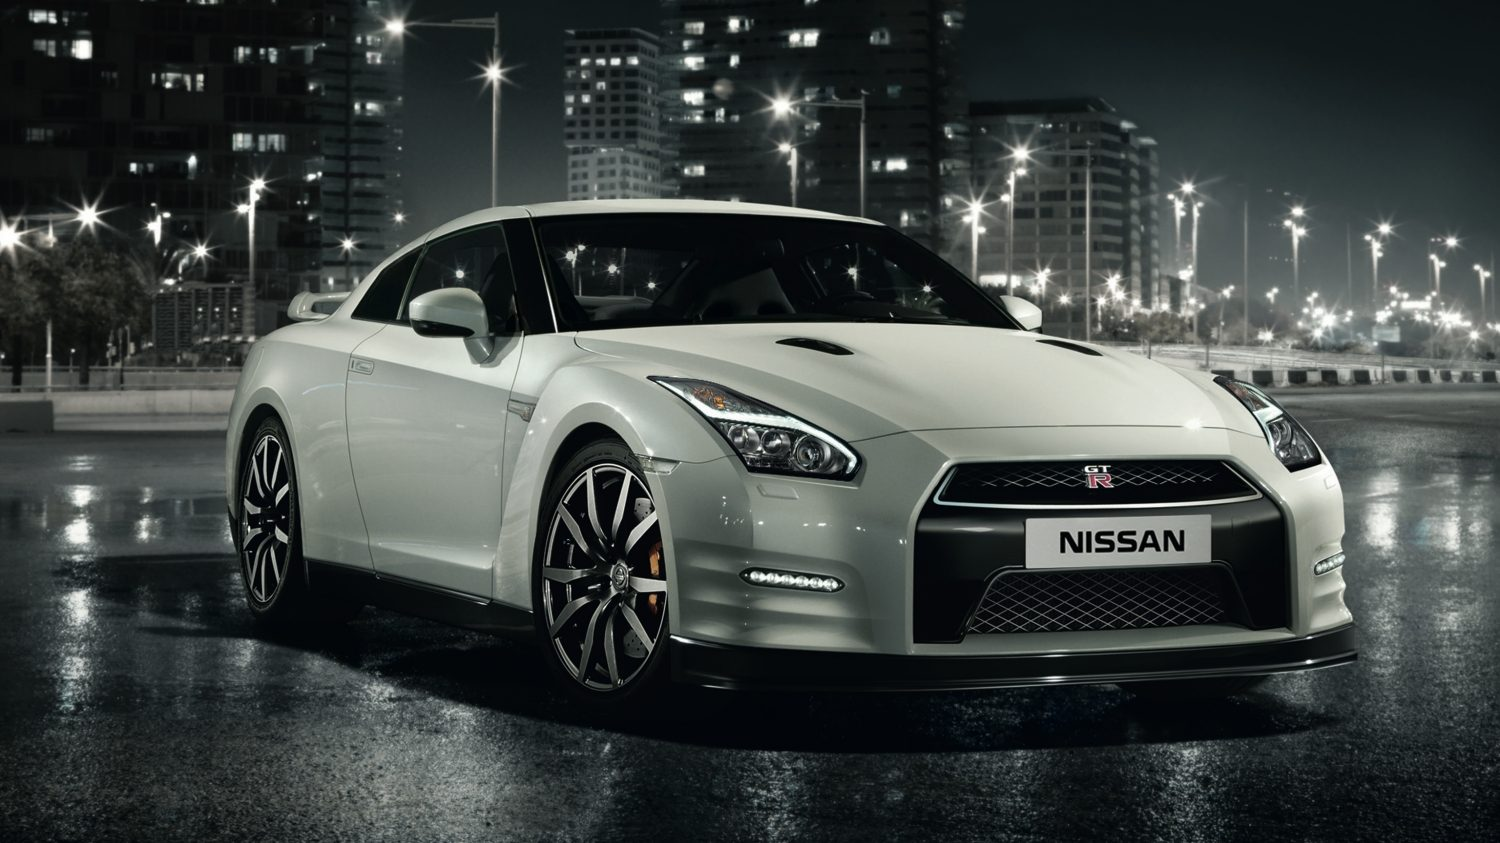 Nissan GT-R white - Front of car parked at night